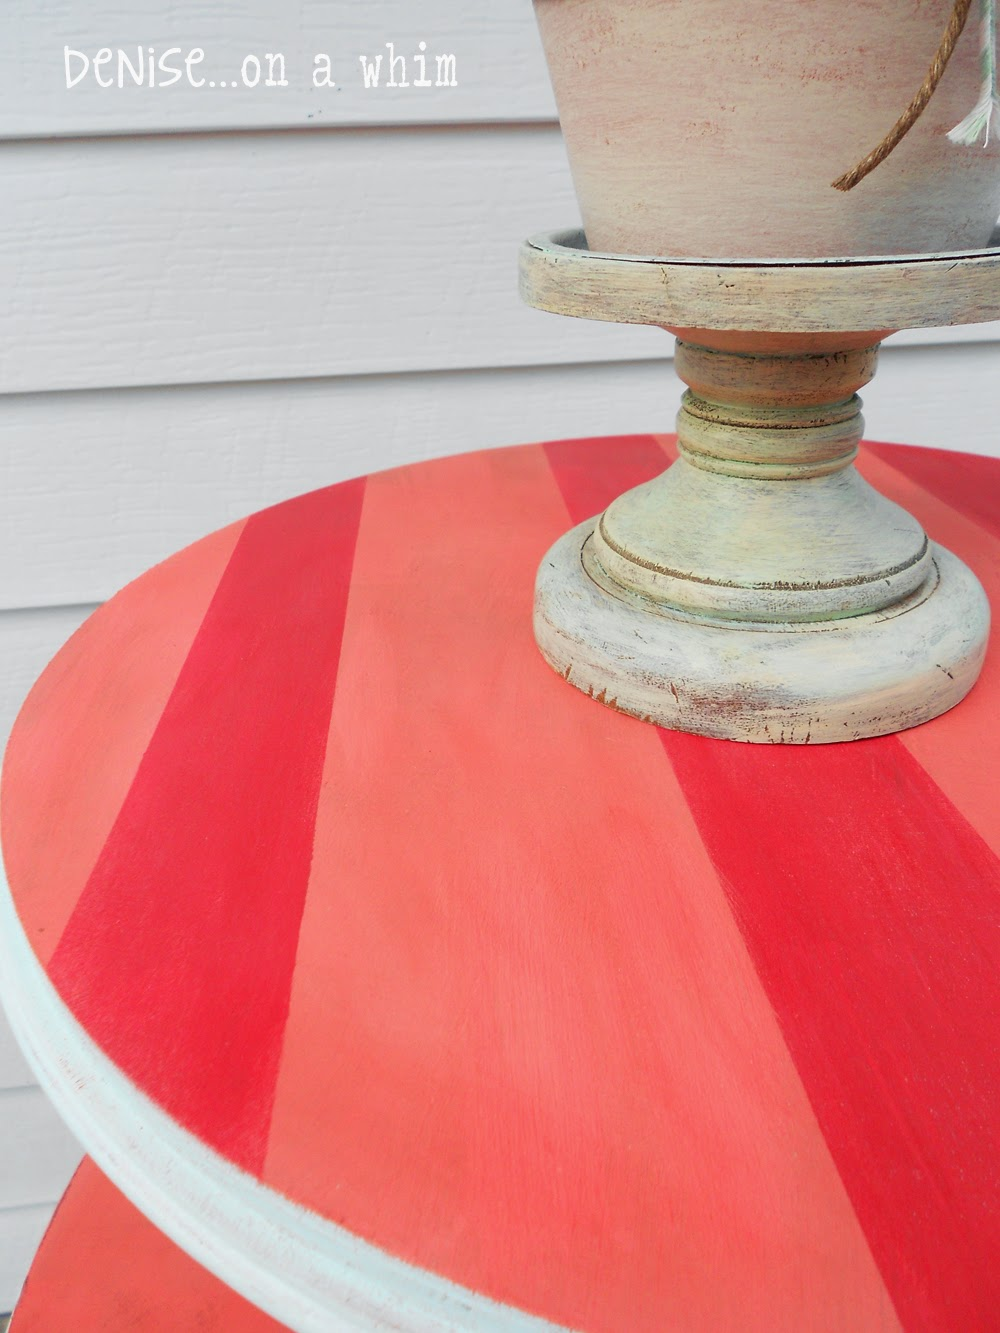 Coral with red stripes add a touch of whimsy to a roadside rescue table from Denise on a Whim